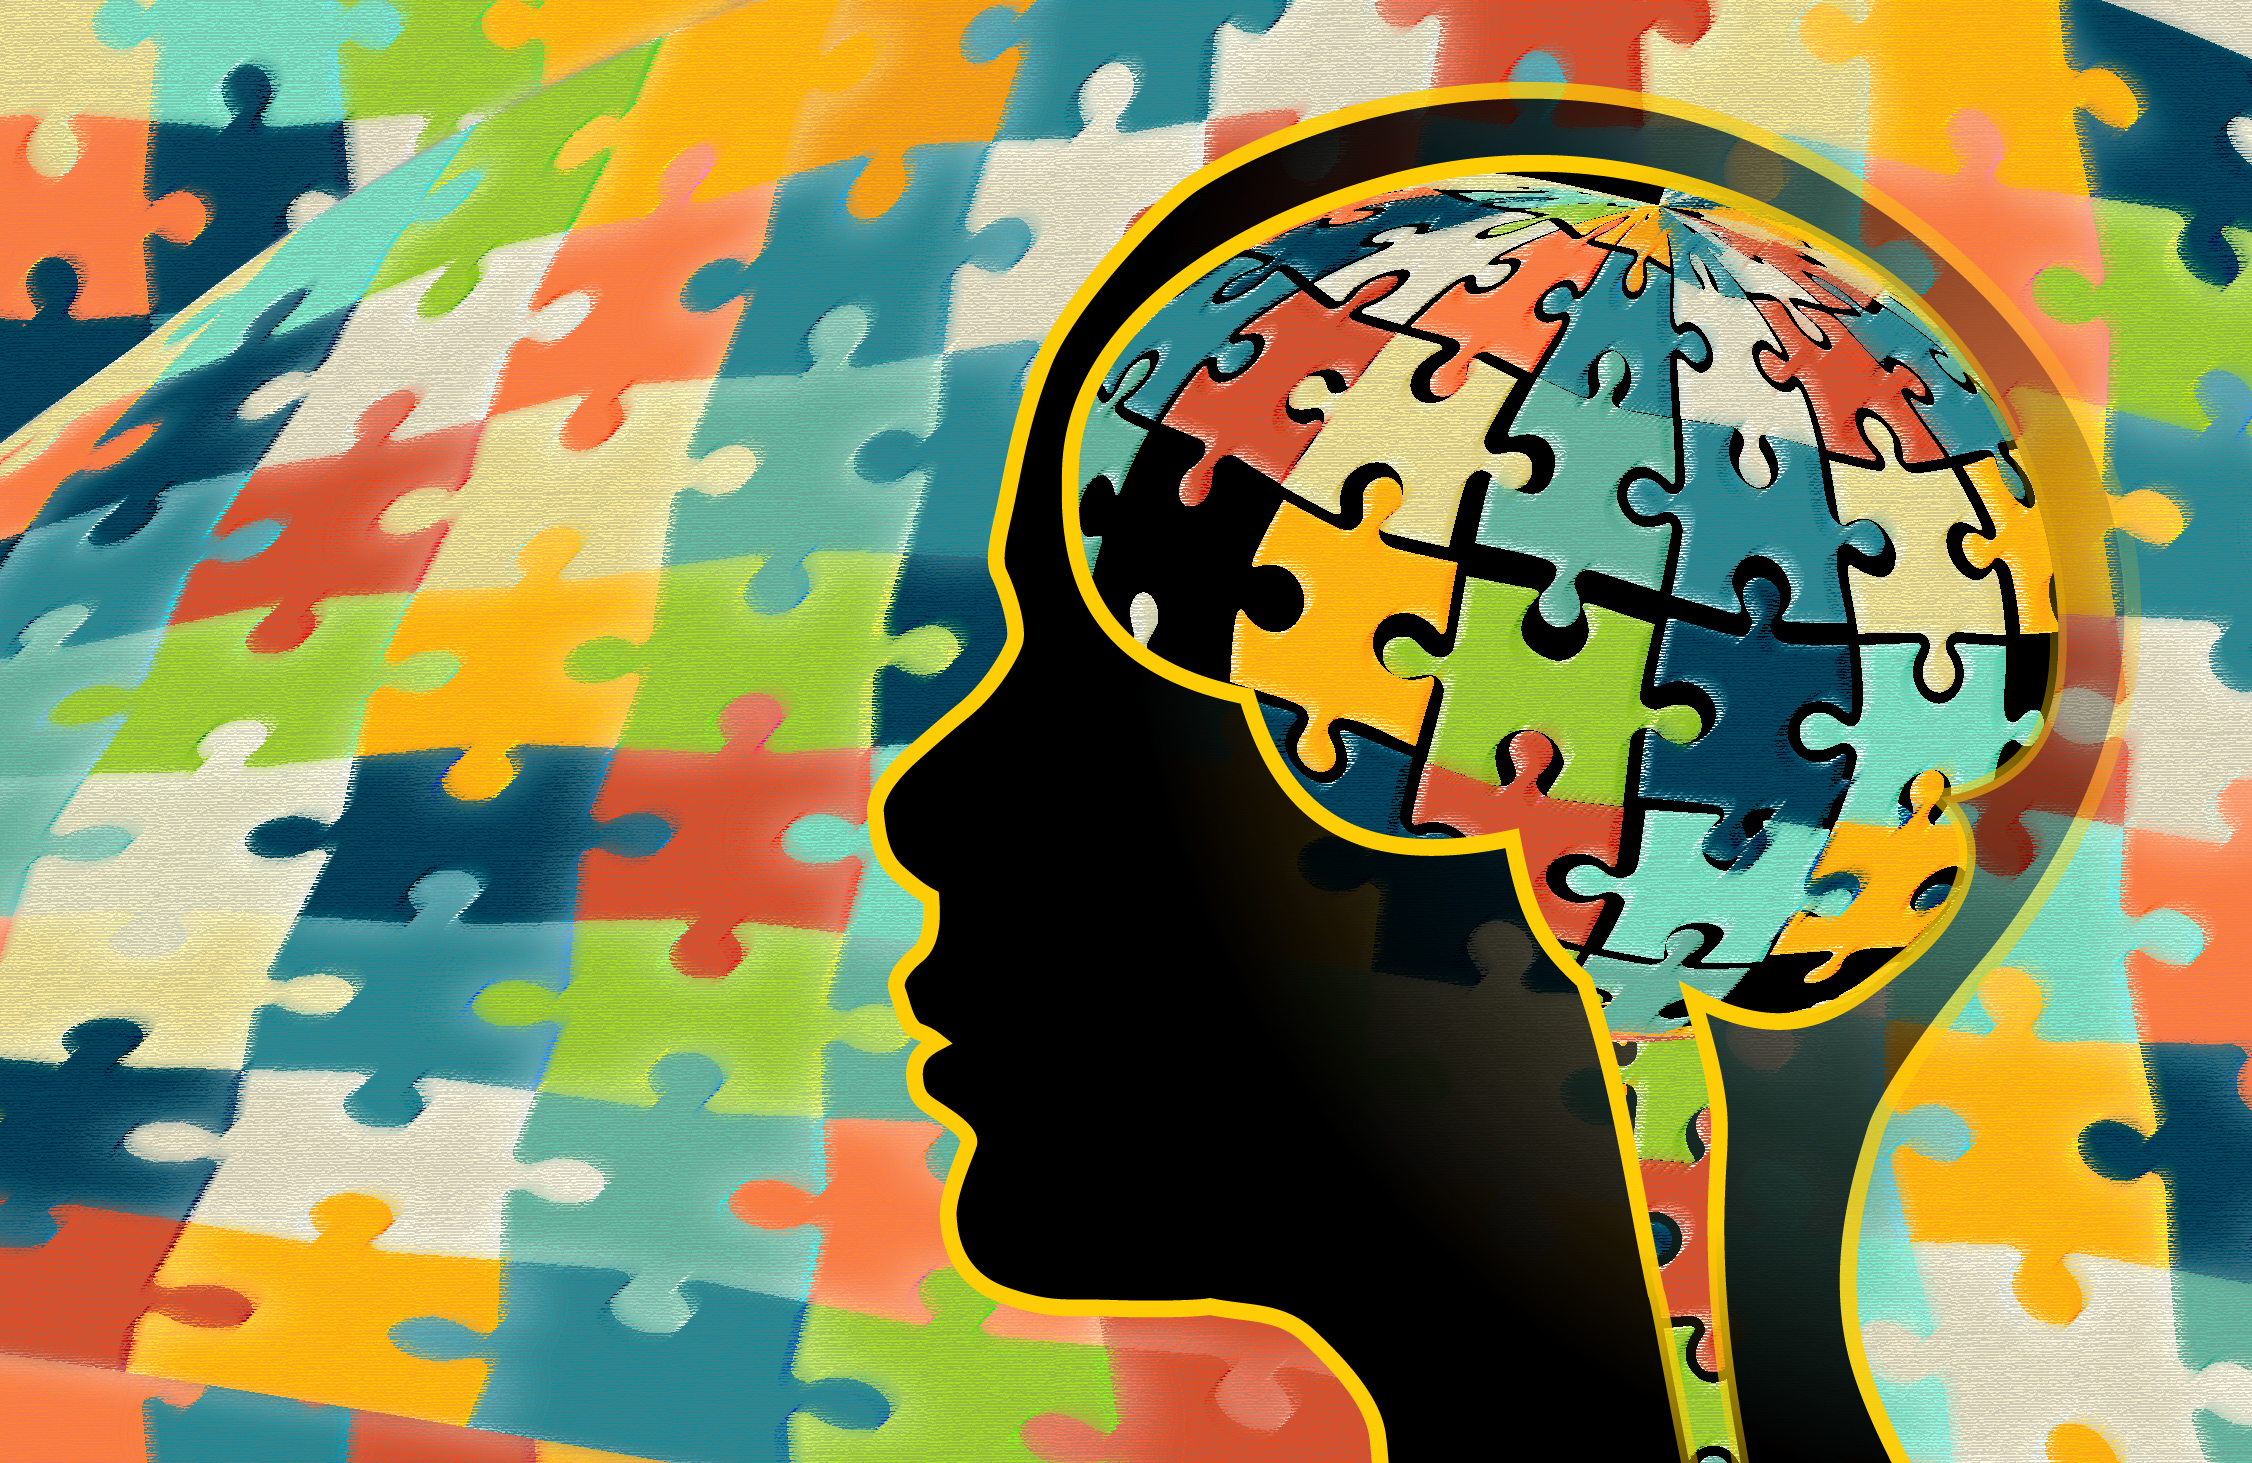 new autism drug shows promise in preclinical study